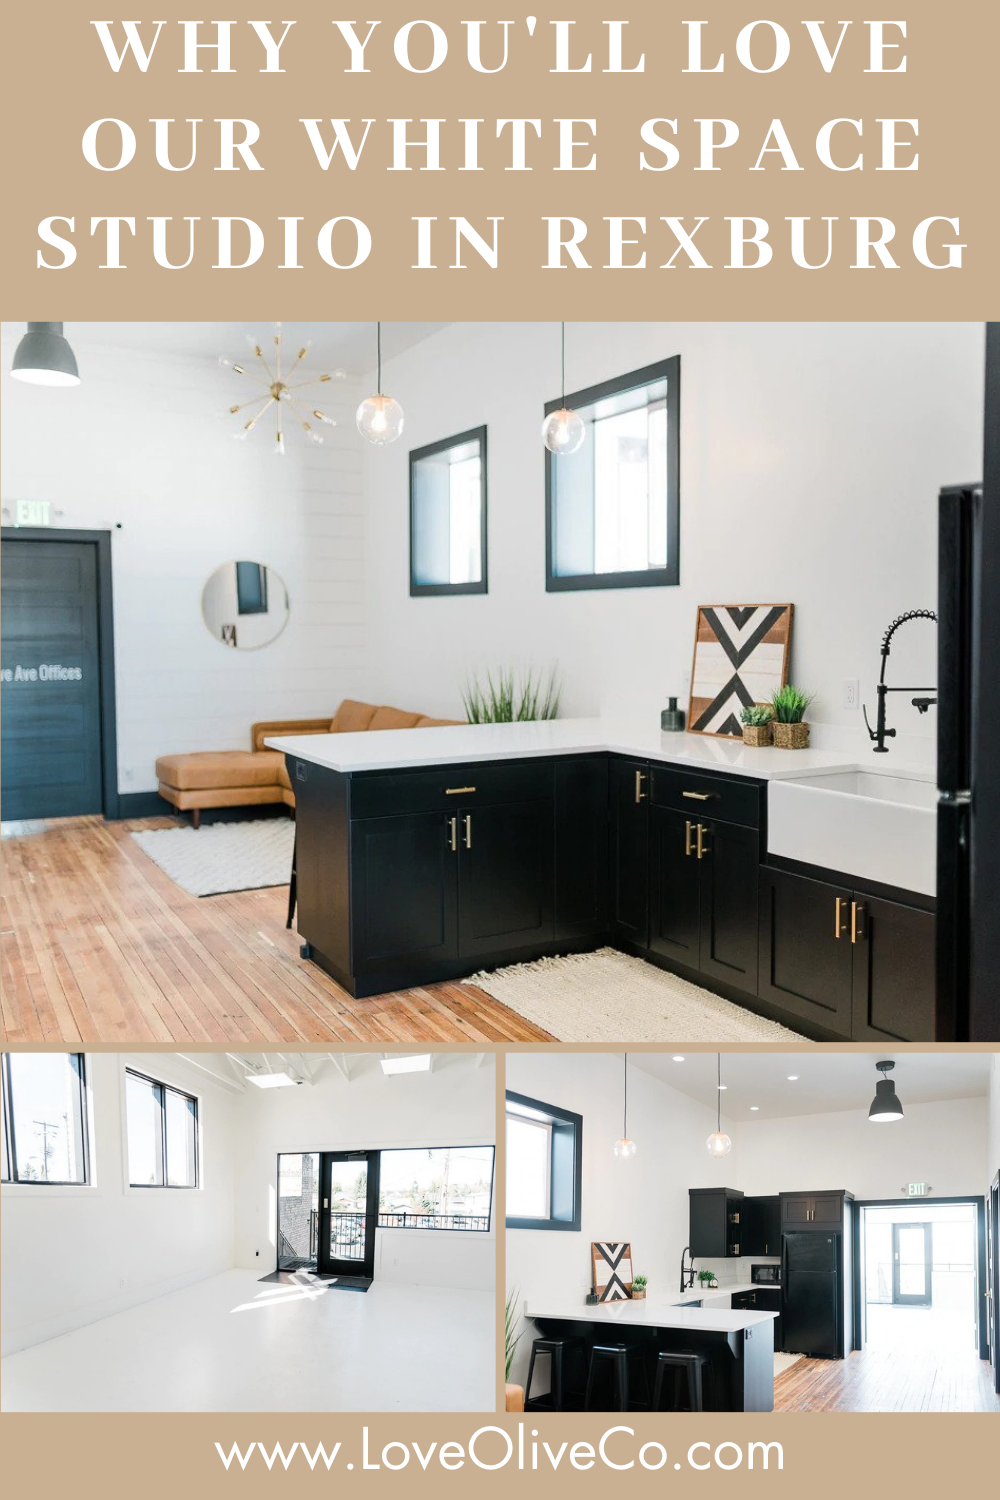 Why You'll Love Our White Studio Space in Rexburg www.loveoliveco.com